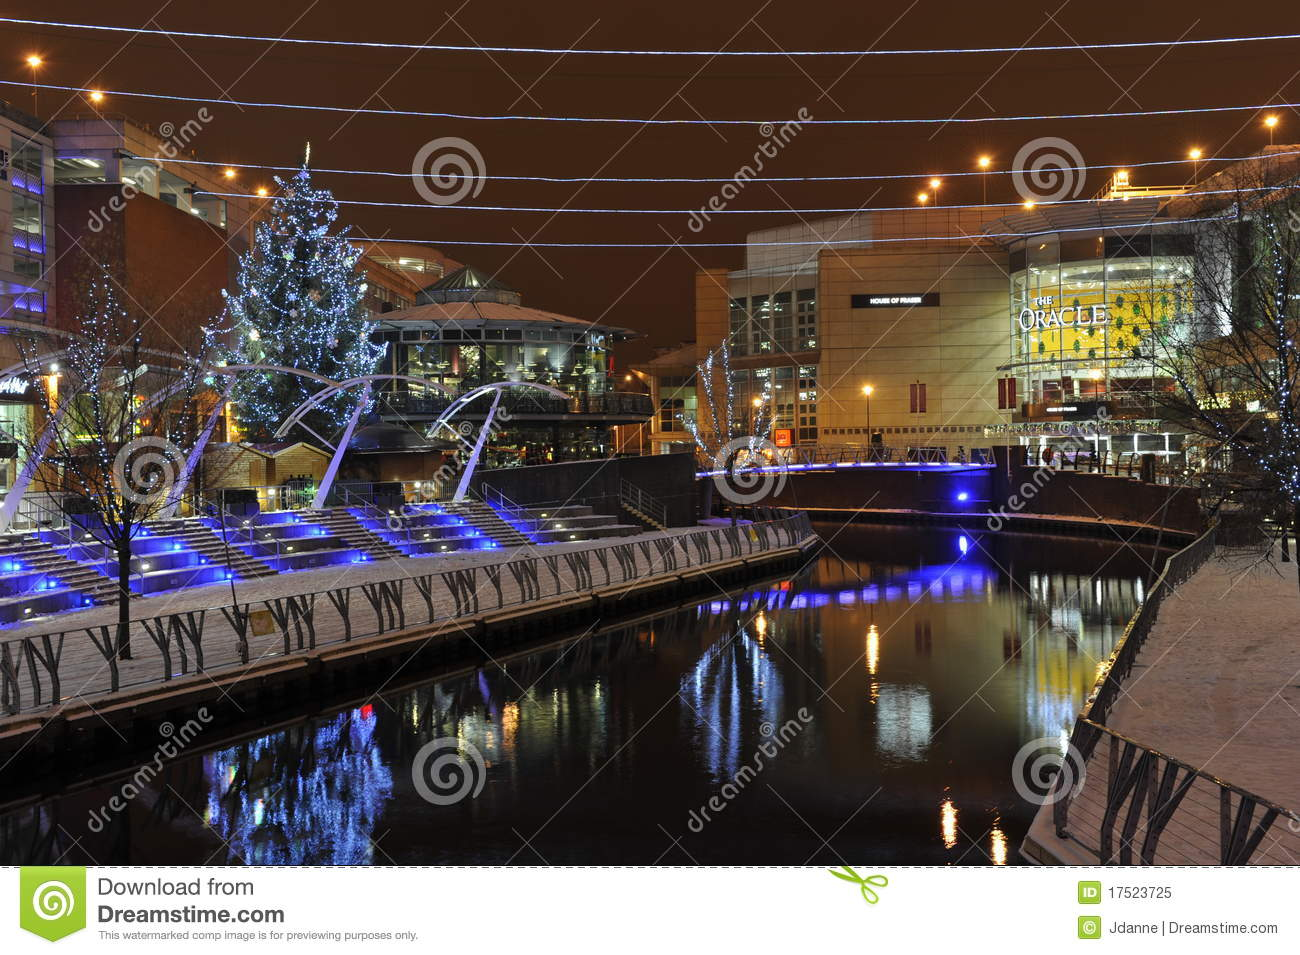 Towns that have great christmas decorations read - Christmas City Decoration England Night Reading